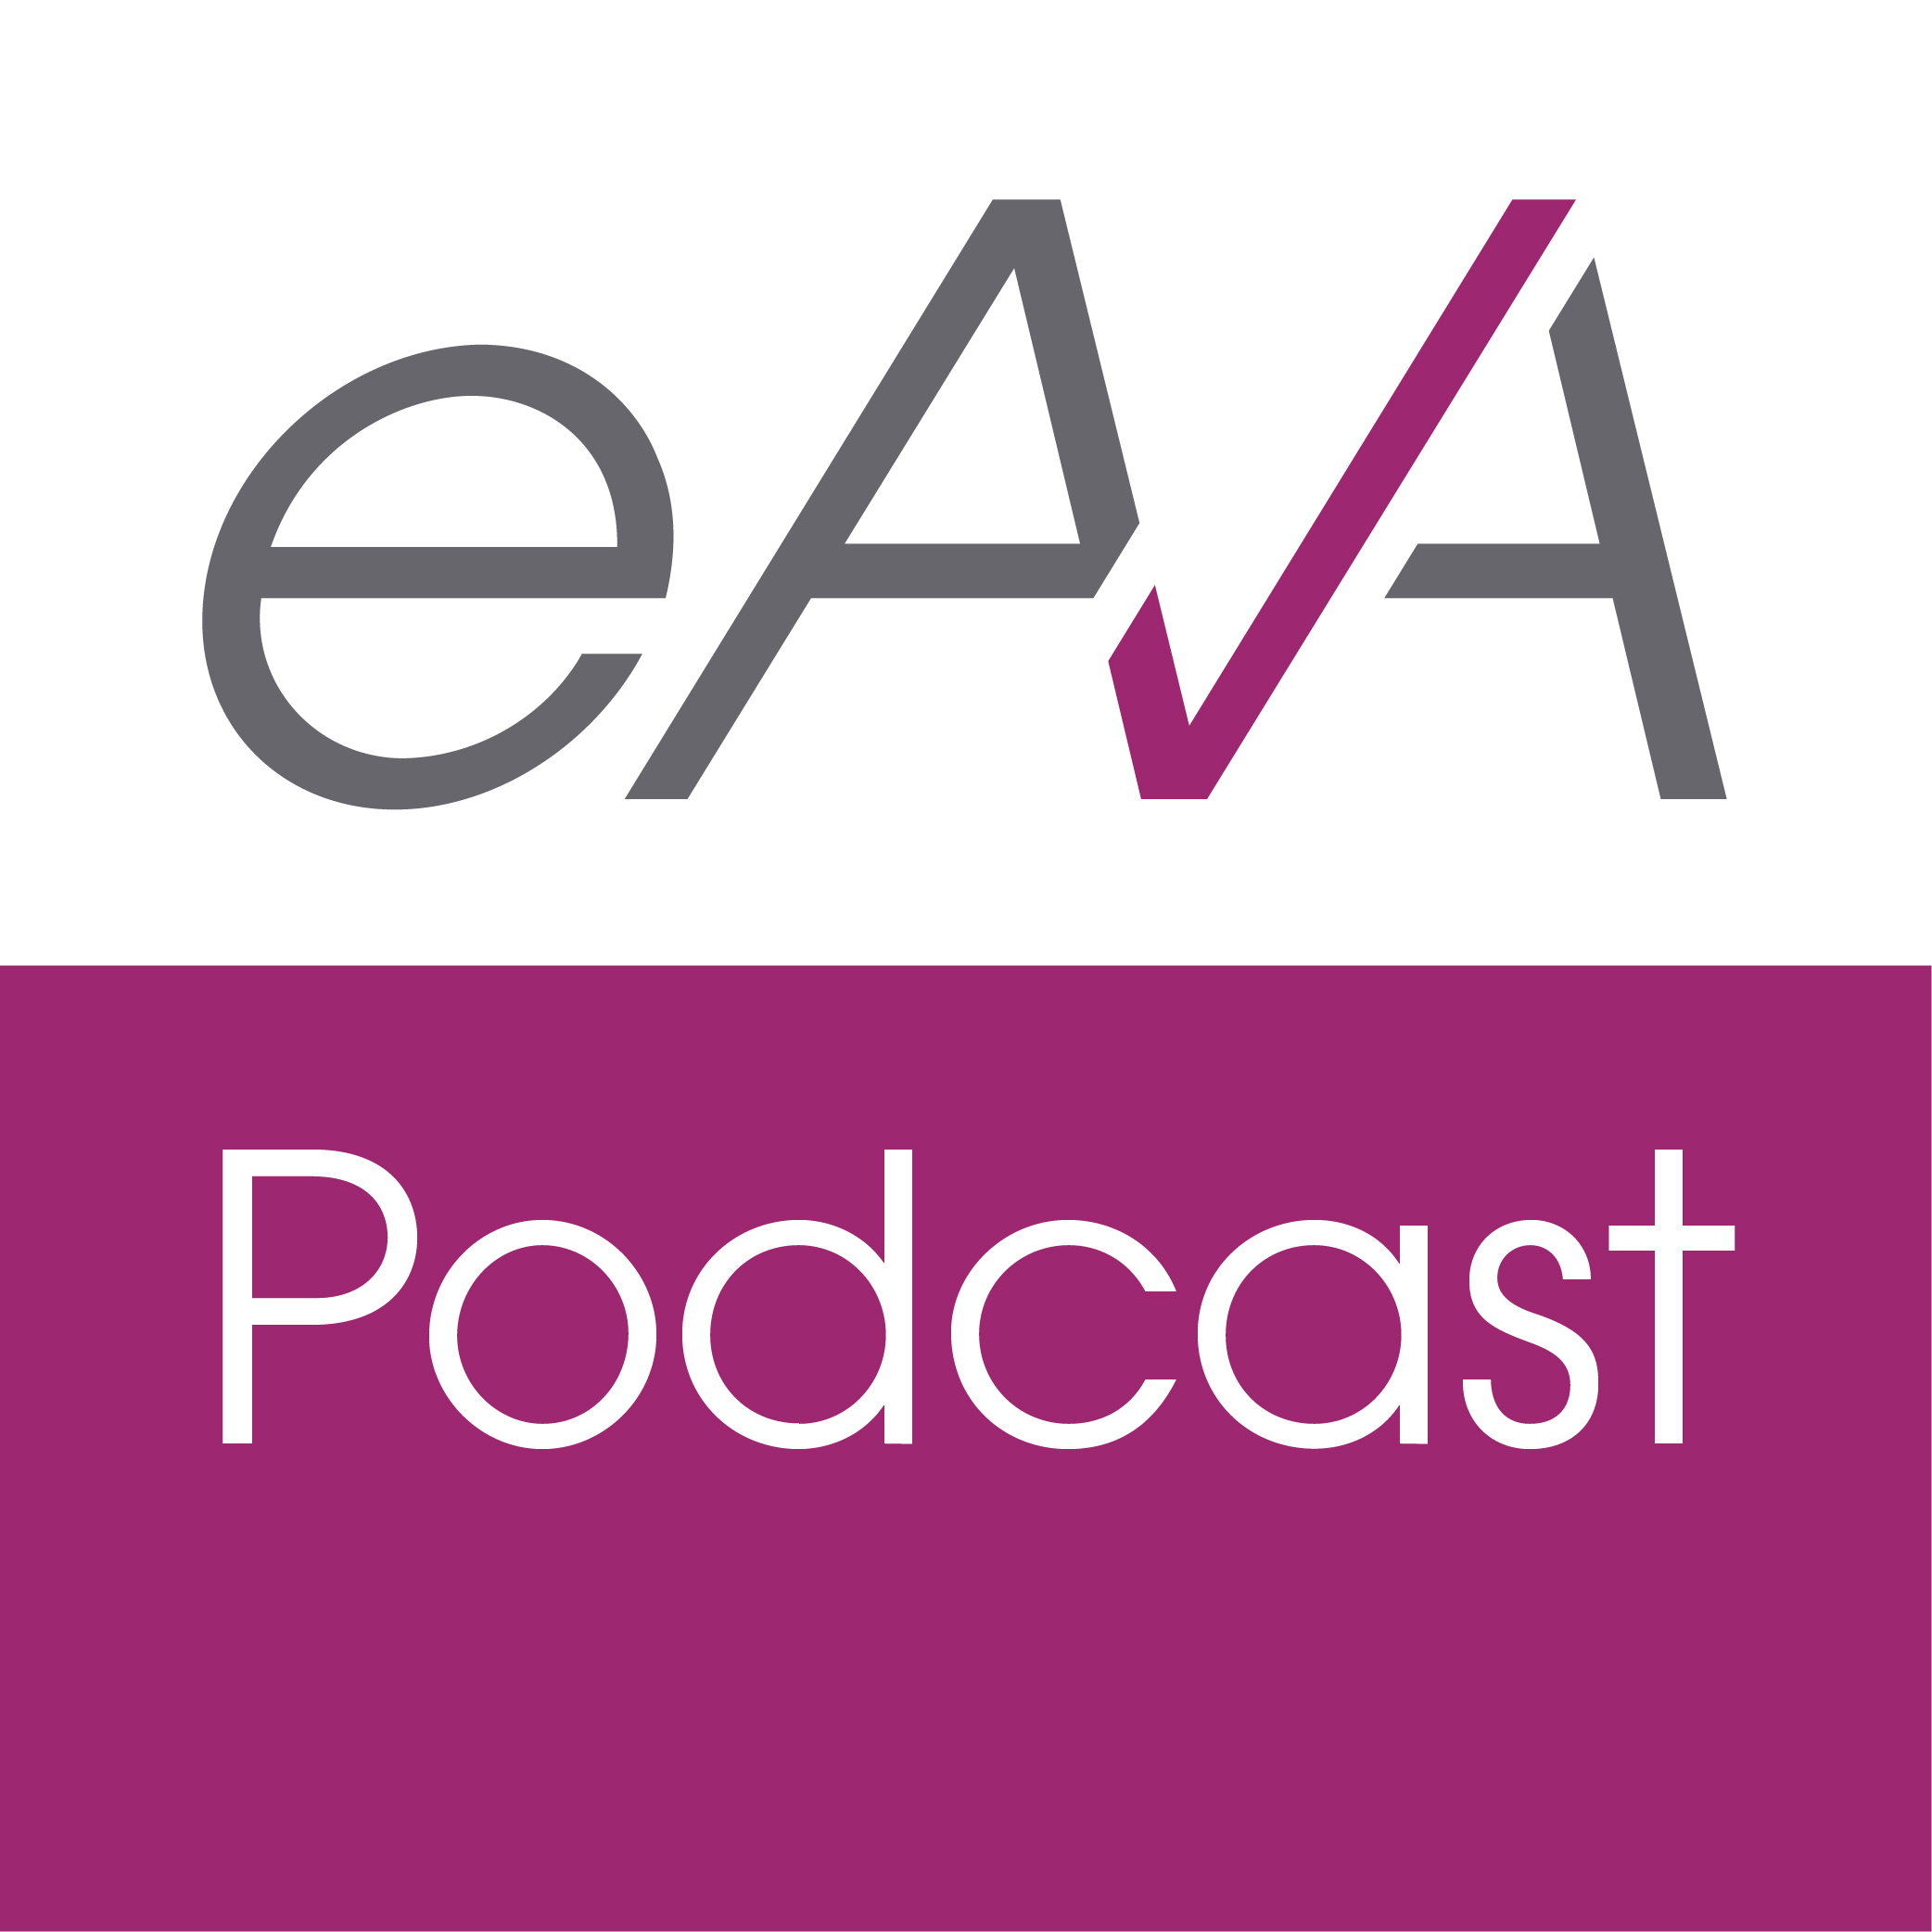 NEW eAA  Podcast: Listen now: What's beyond multiple-choice? Brian Moon talks about the 2019 Beyond Multiple-Choice conference